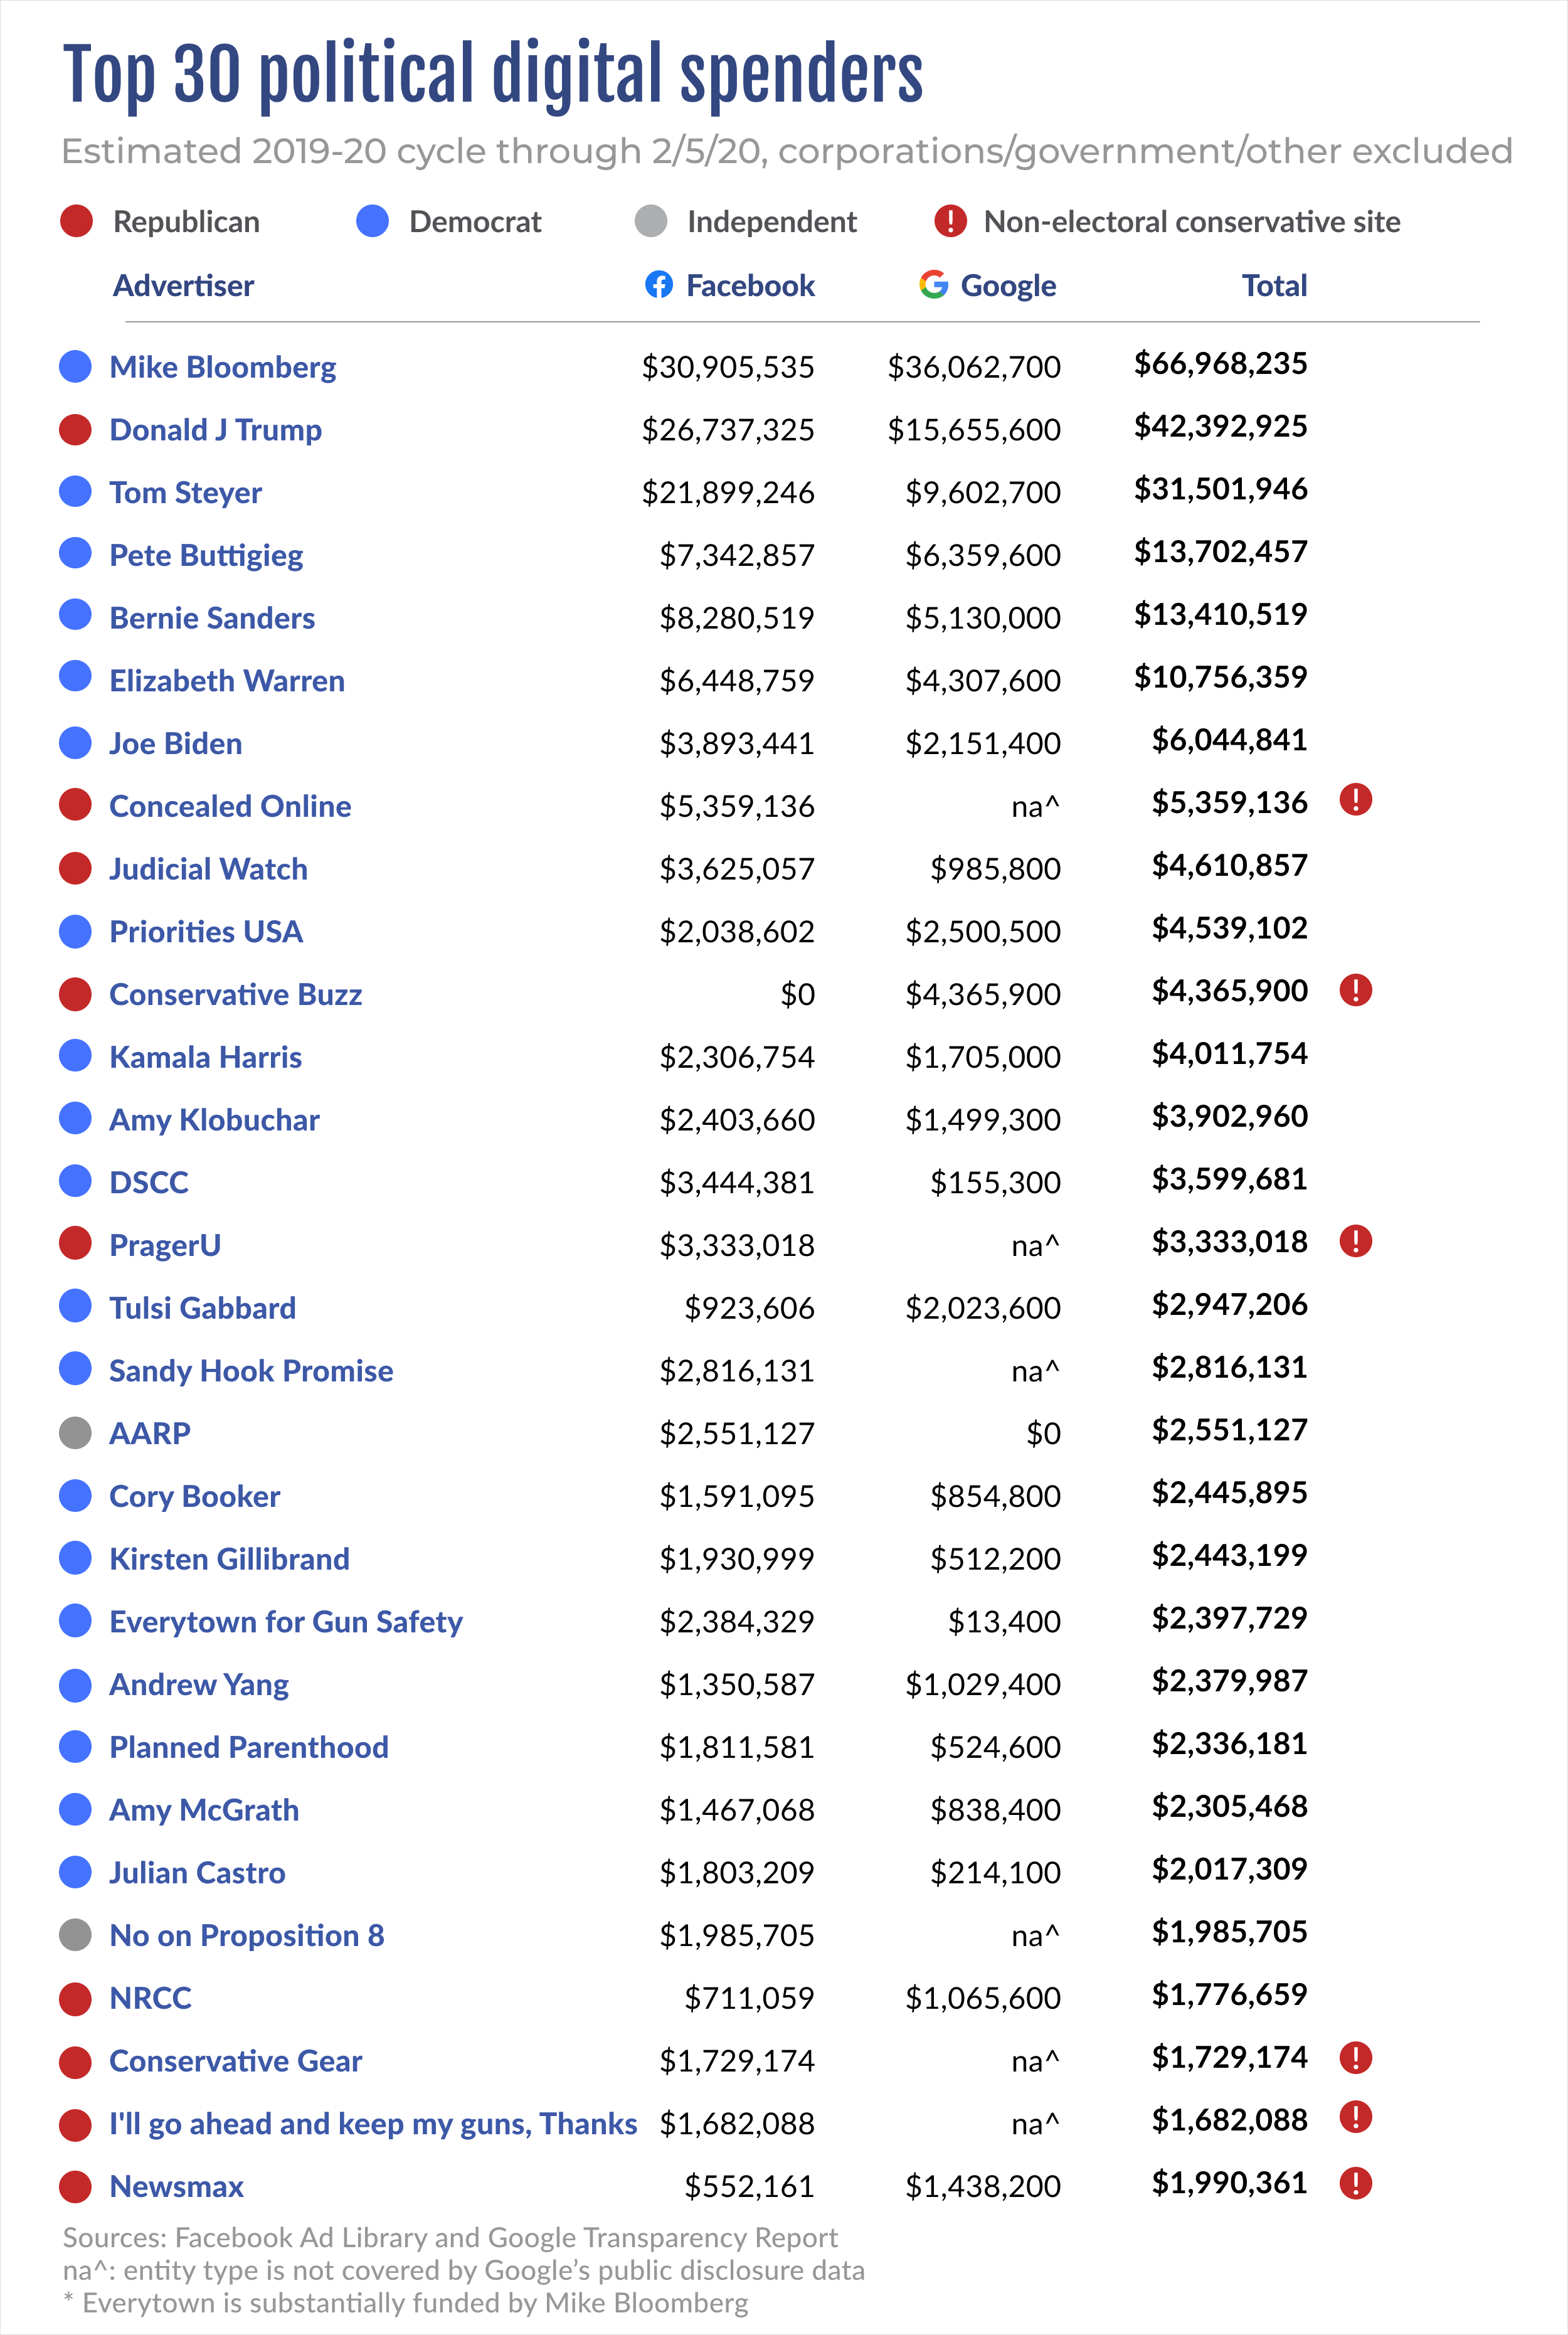 Top 30 political digital spenders by political party